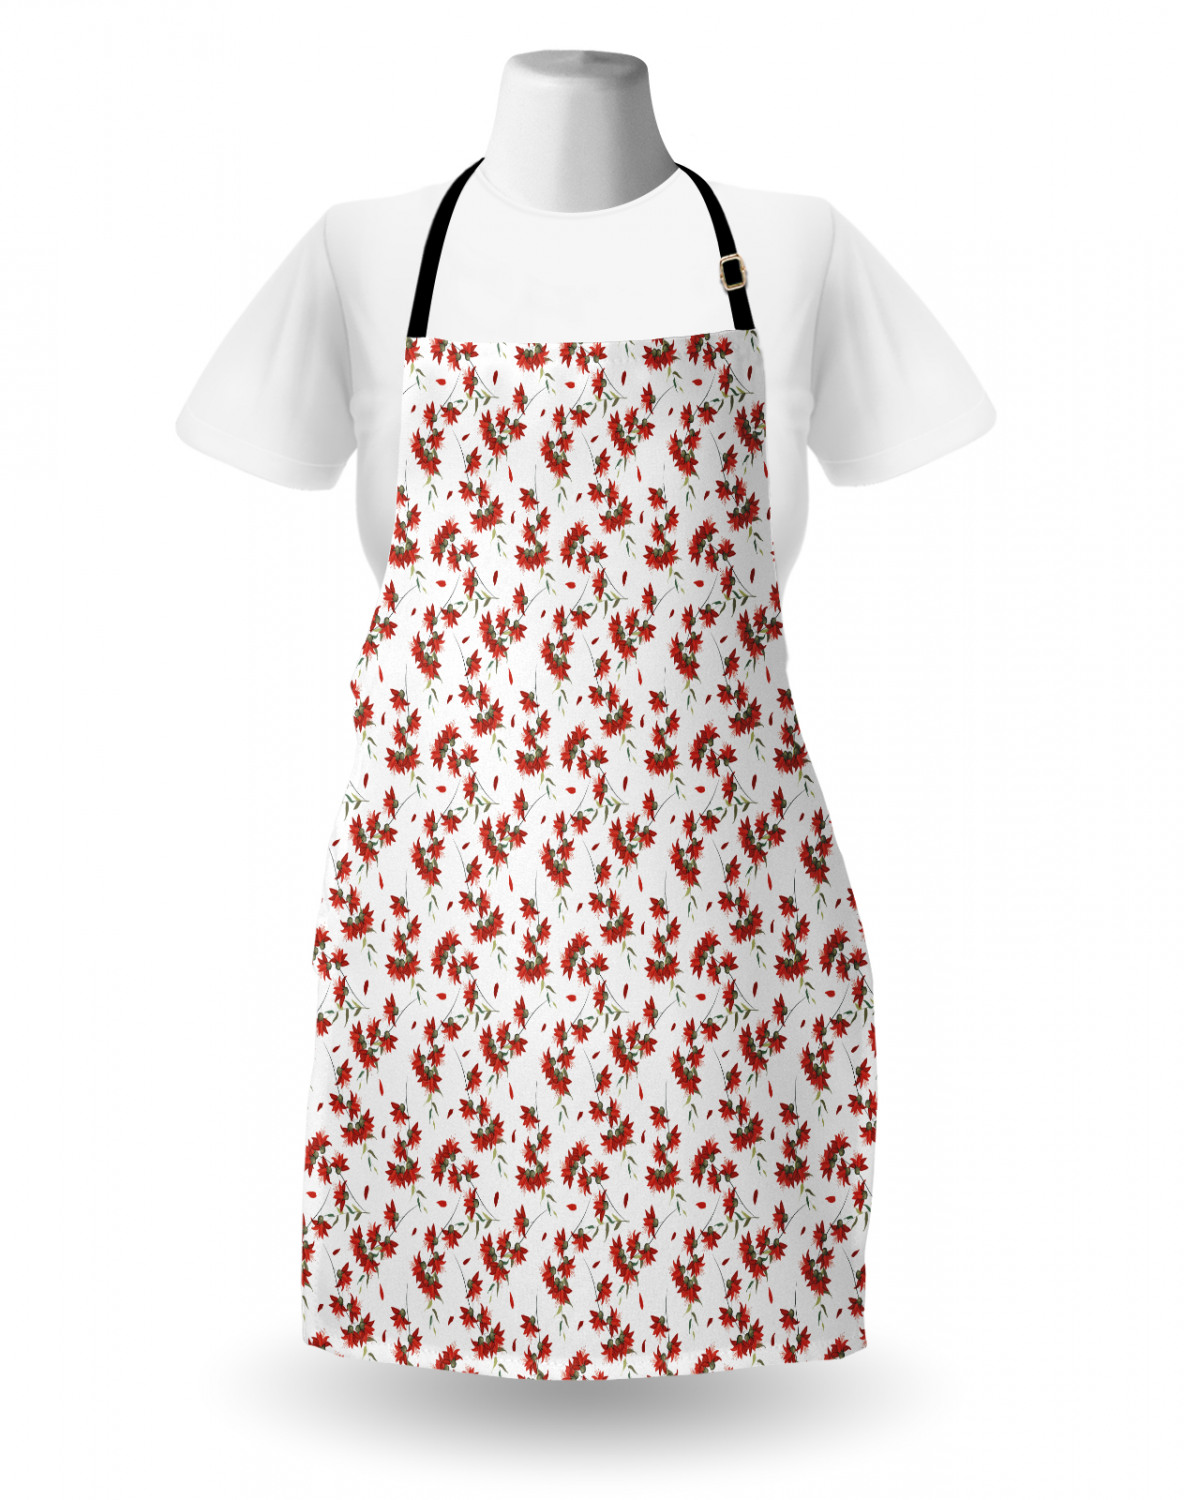 Ambesonne-Outdoor-Use-Apron-with-Adjustable-Neck-Strap-for-Gardening-and-Cooking miniatura 134